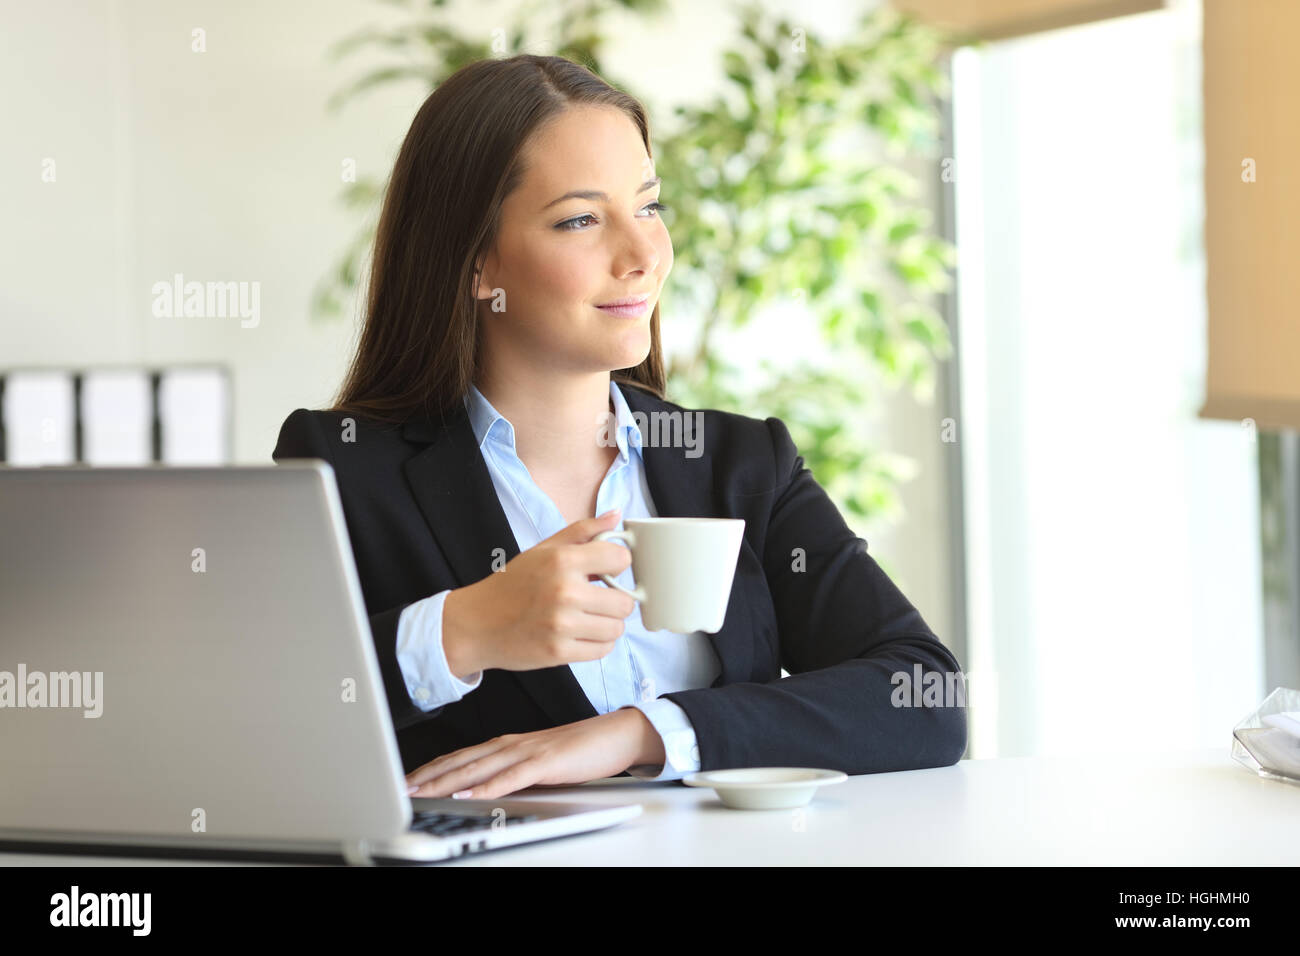 Pensive executive relaxing in a desk at office looking through the window with a cup of coffee - Stock Image